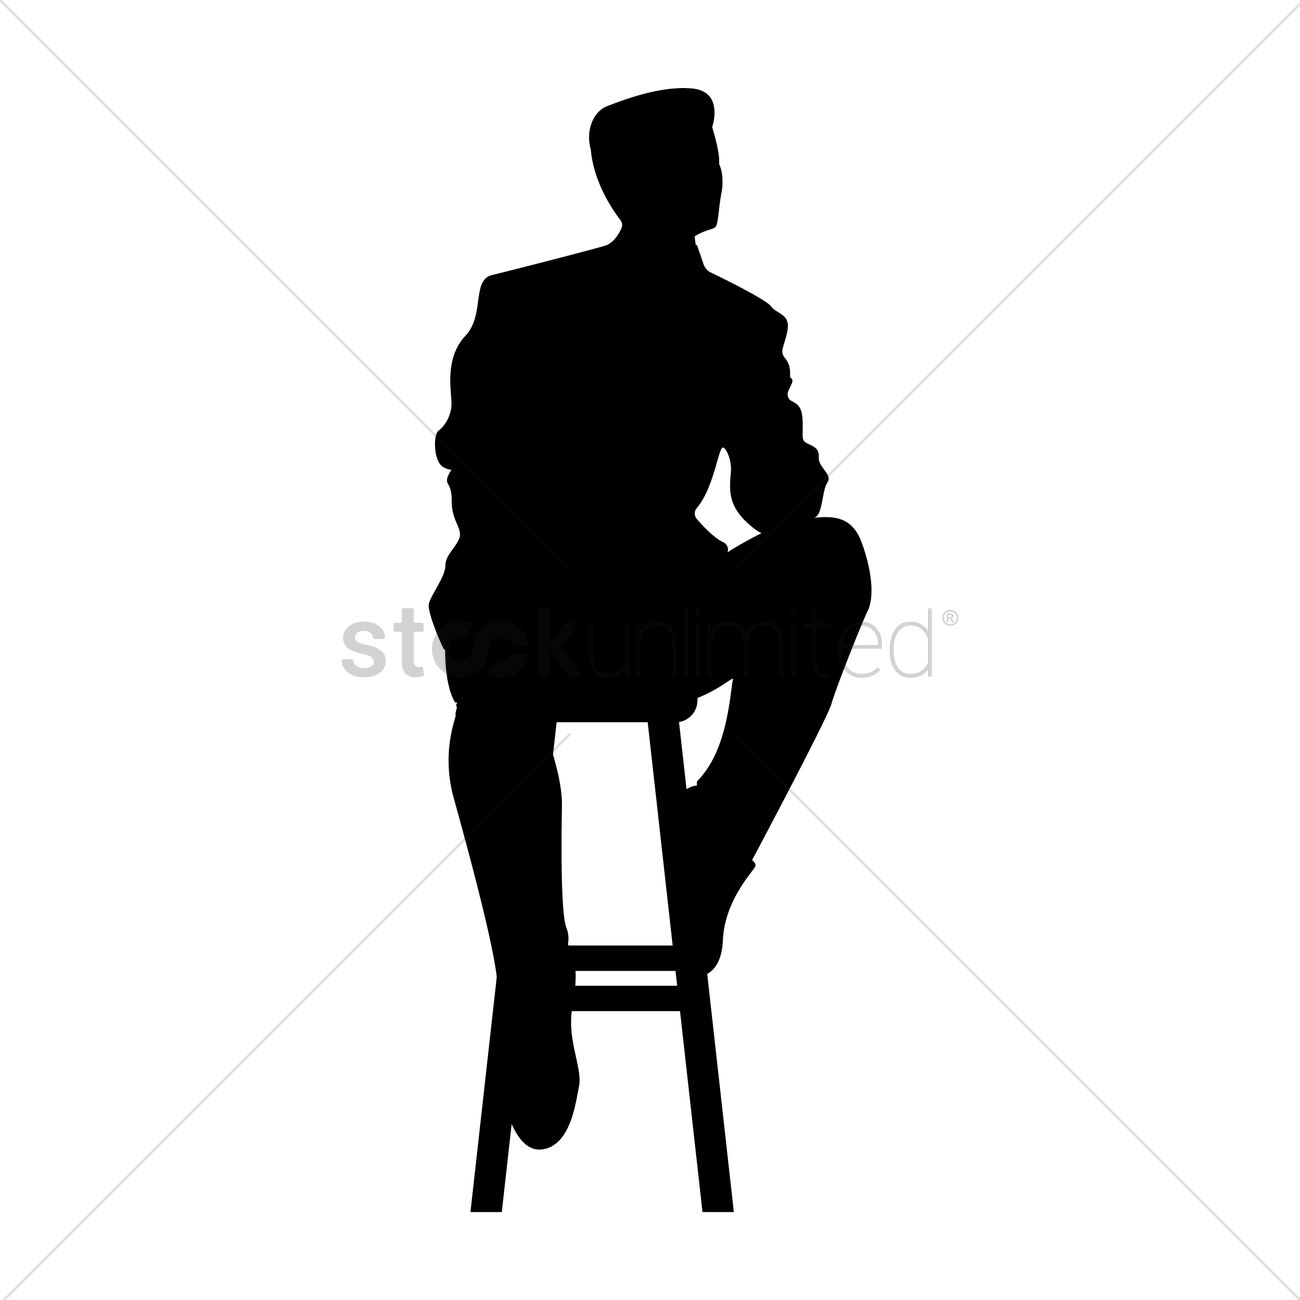 Silhouette Of Man Sitting At Getdrawings Com Free For